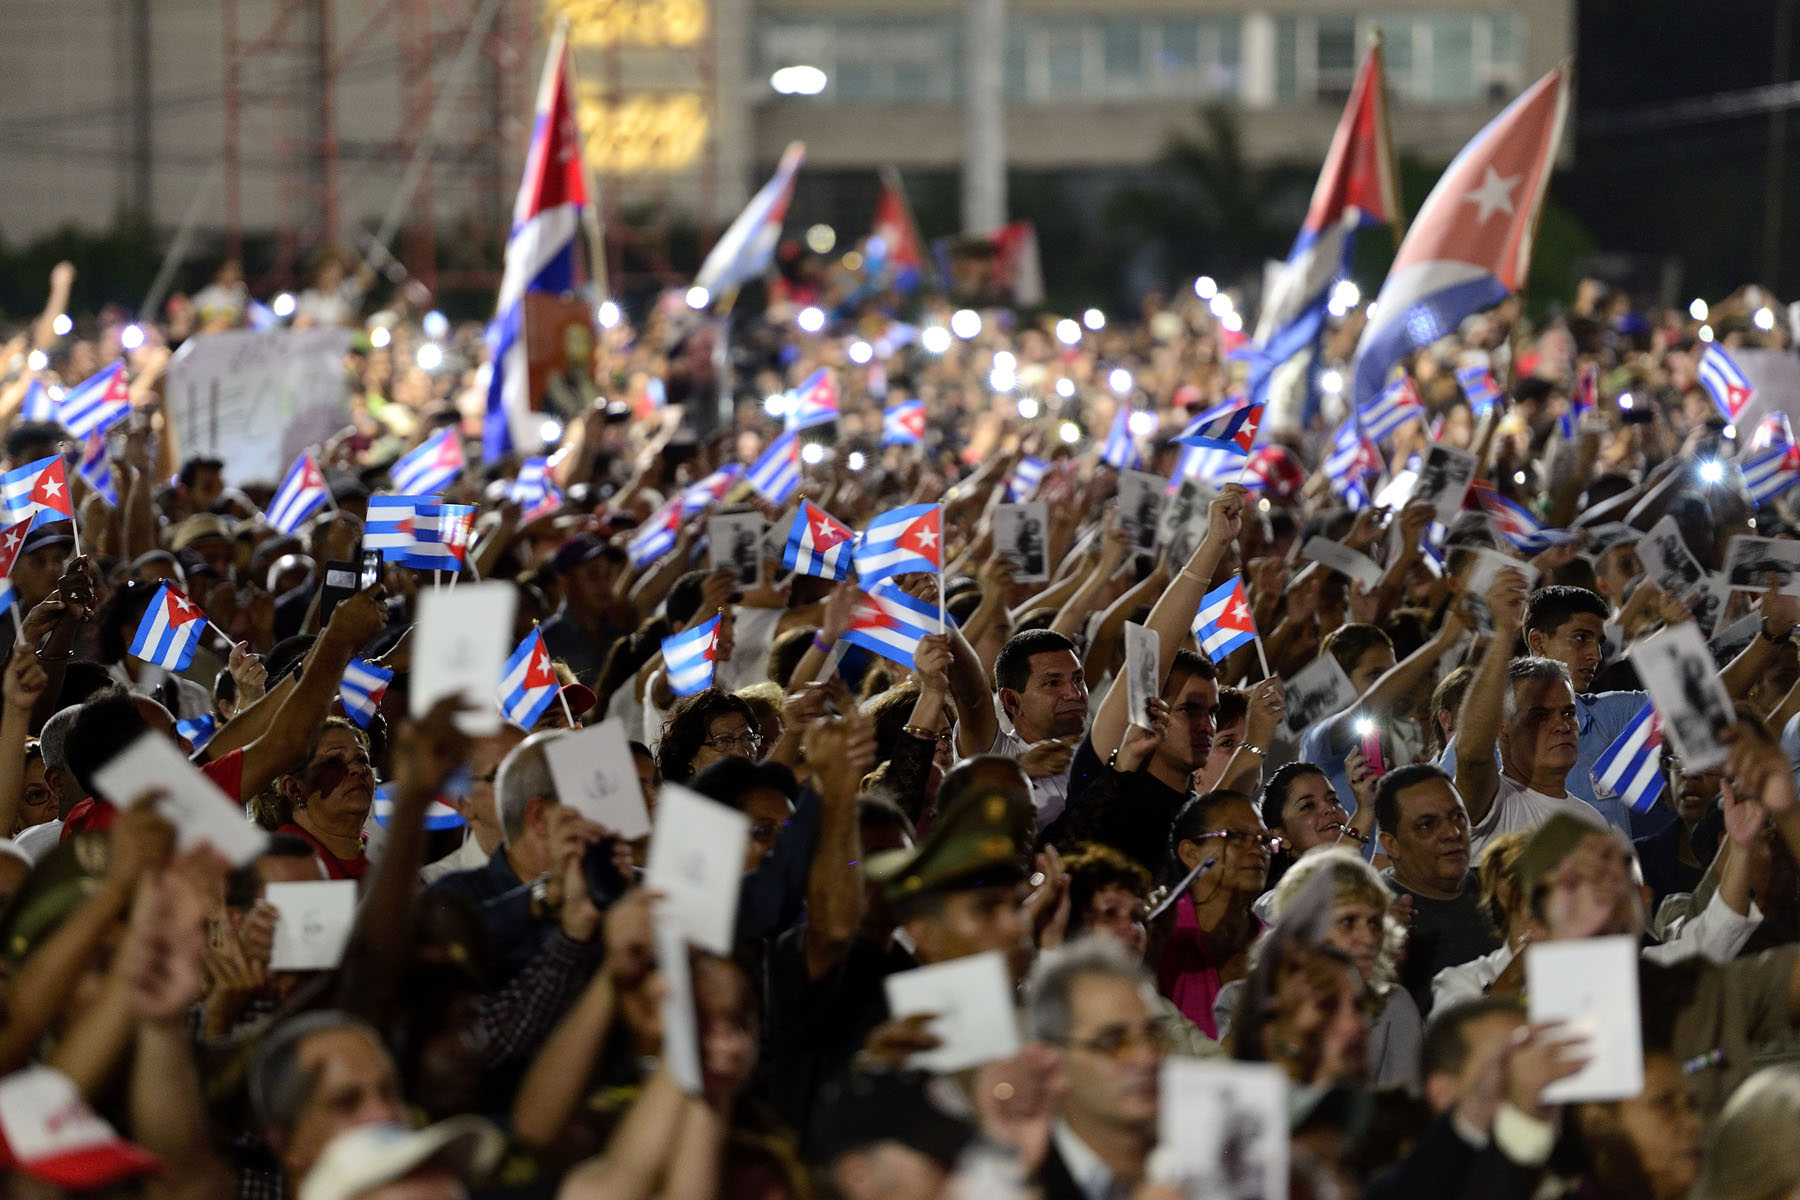 This event was the final event in commemoration of Fidel Castro at the Plaza de la Revolución, following two days that were open to the public. The funeral will be held on December 4 in Santiago.